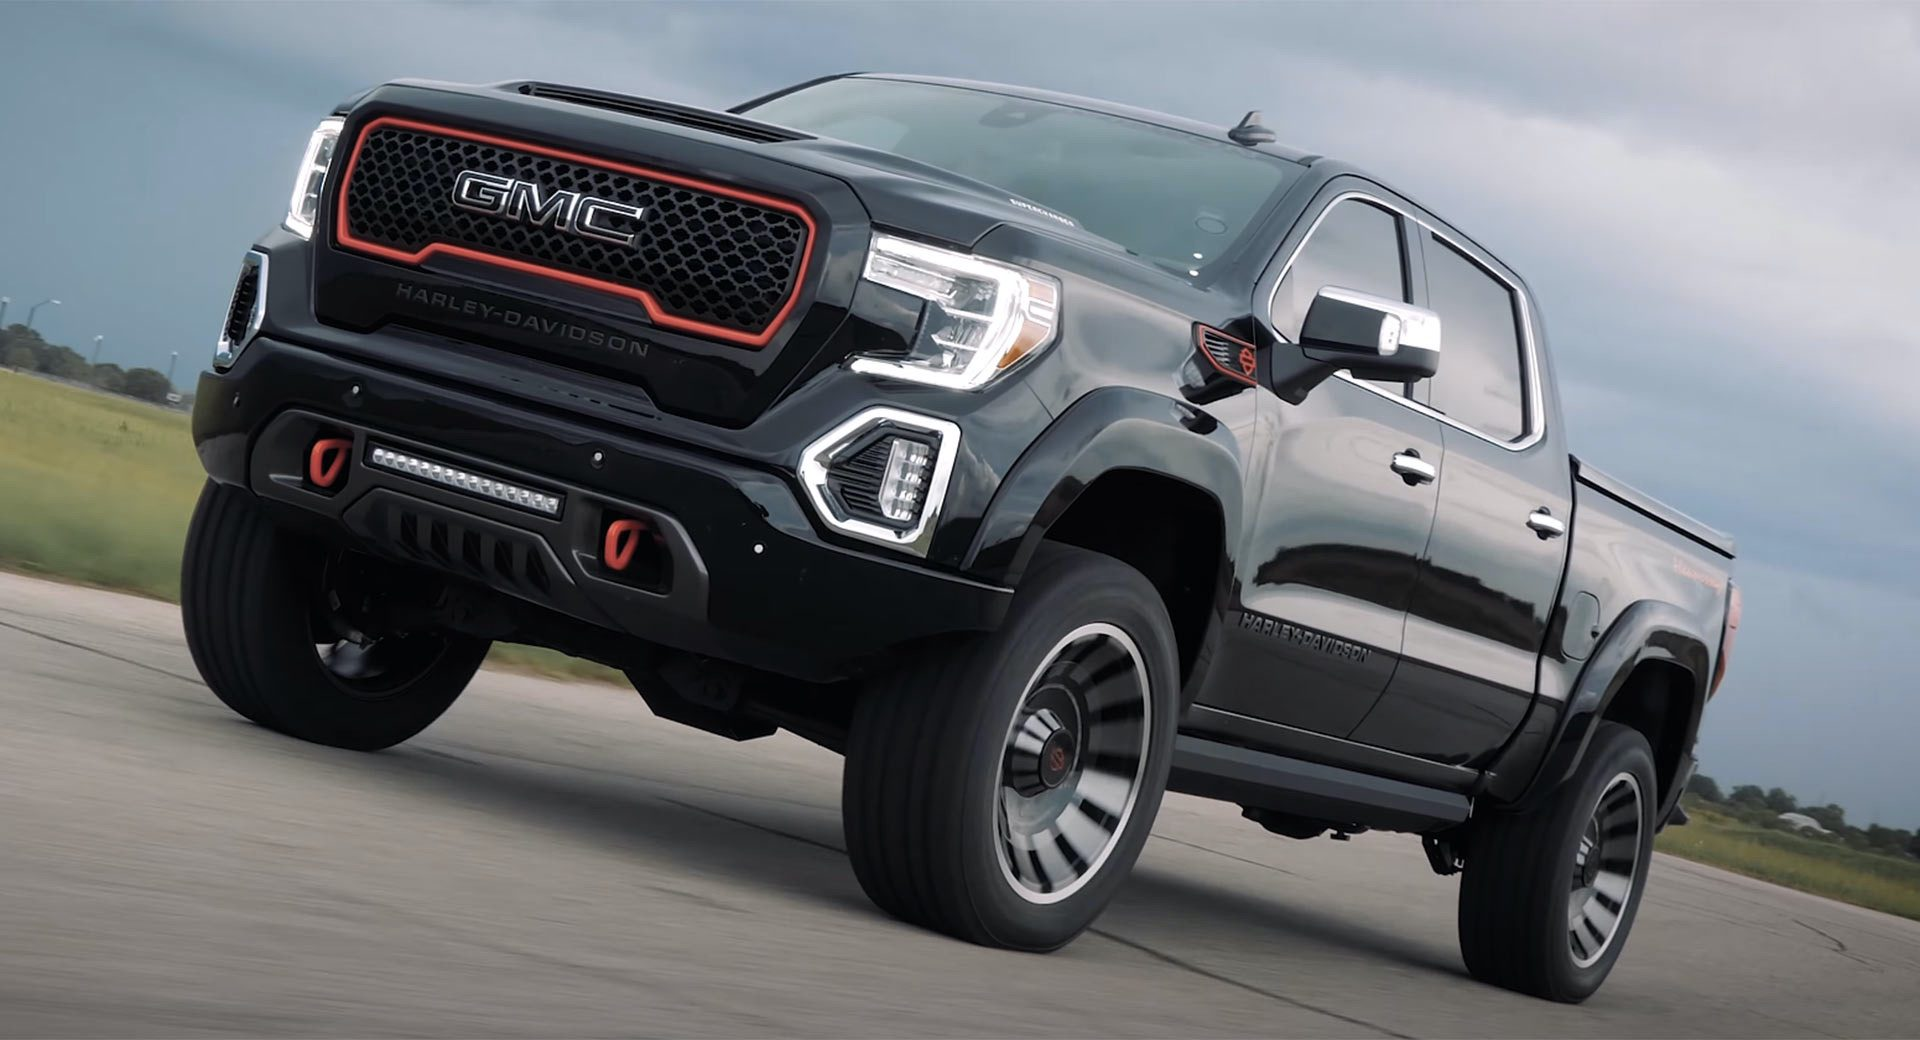 2020-GMC-Sierra-1500-Harley-Davidson-Edition-Tuscany-Automotive_0017